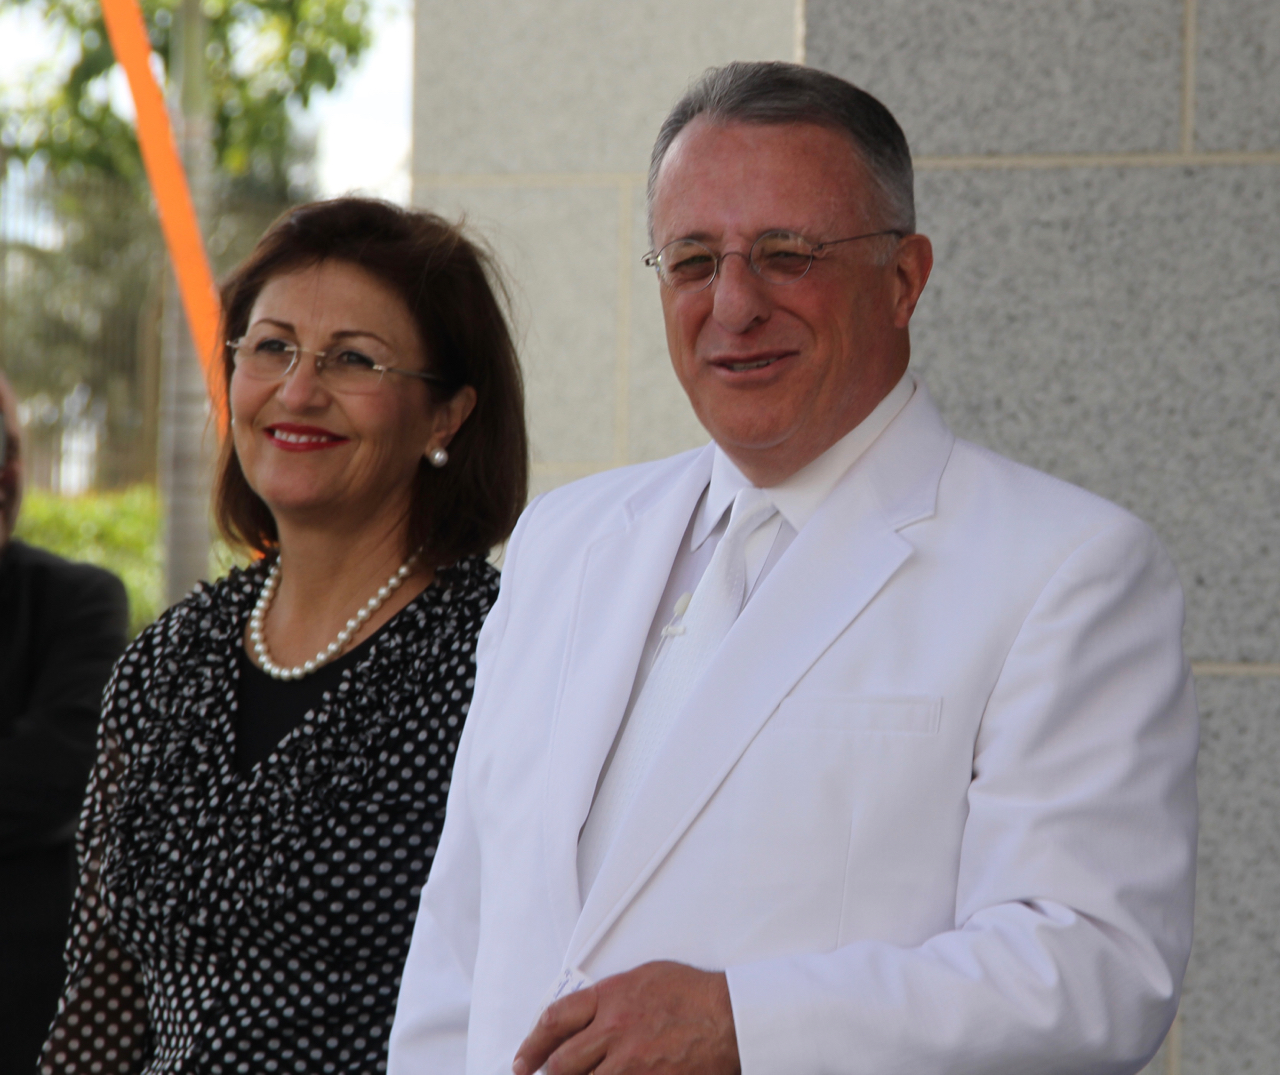 Elder Ulisses Soares of the Quorum of the Twelve Apostles with his wife, Sister Rosasa Soares, speaks to members gathered at the cornerstone ceremony of the Fortaleza Brazil Temple on Sunday, June 2, 2019.